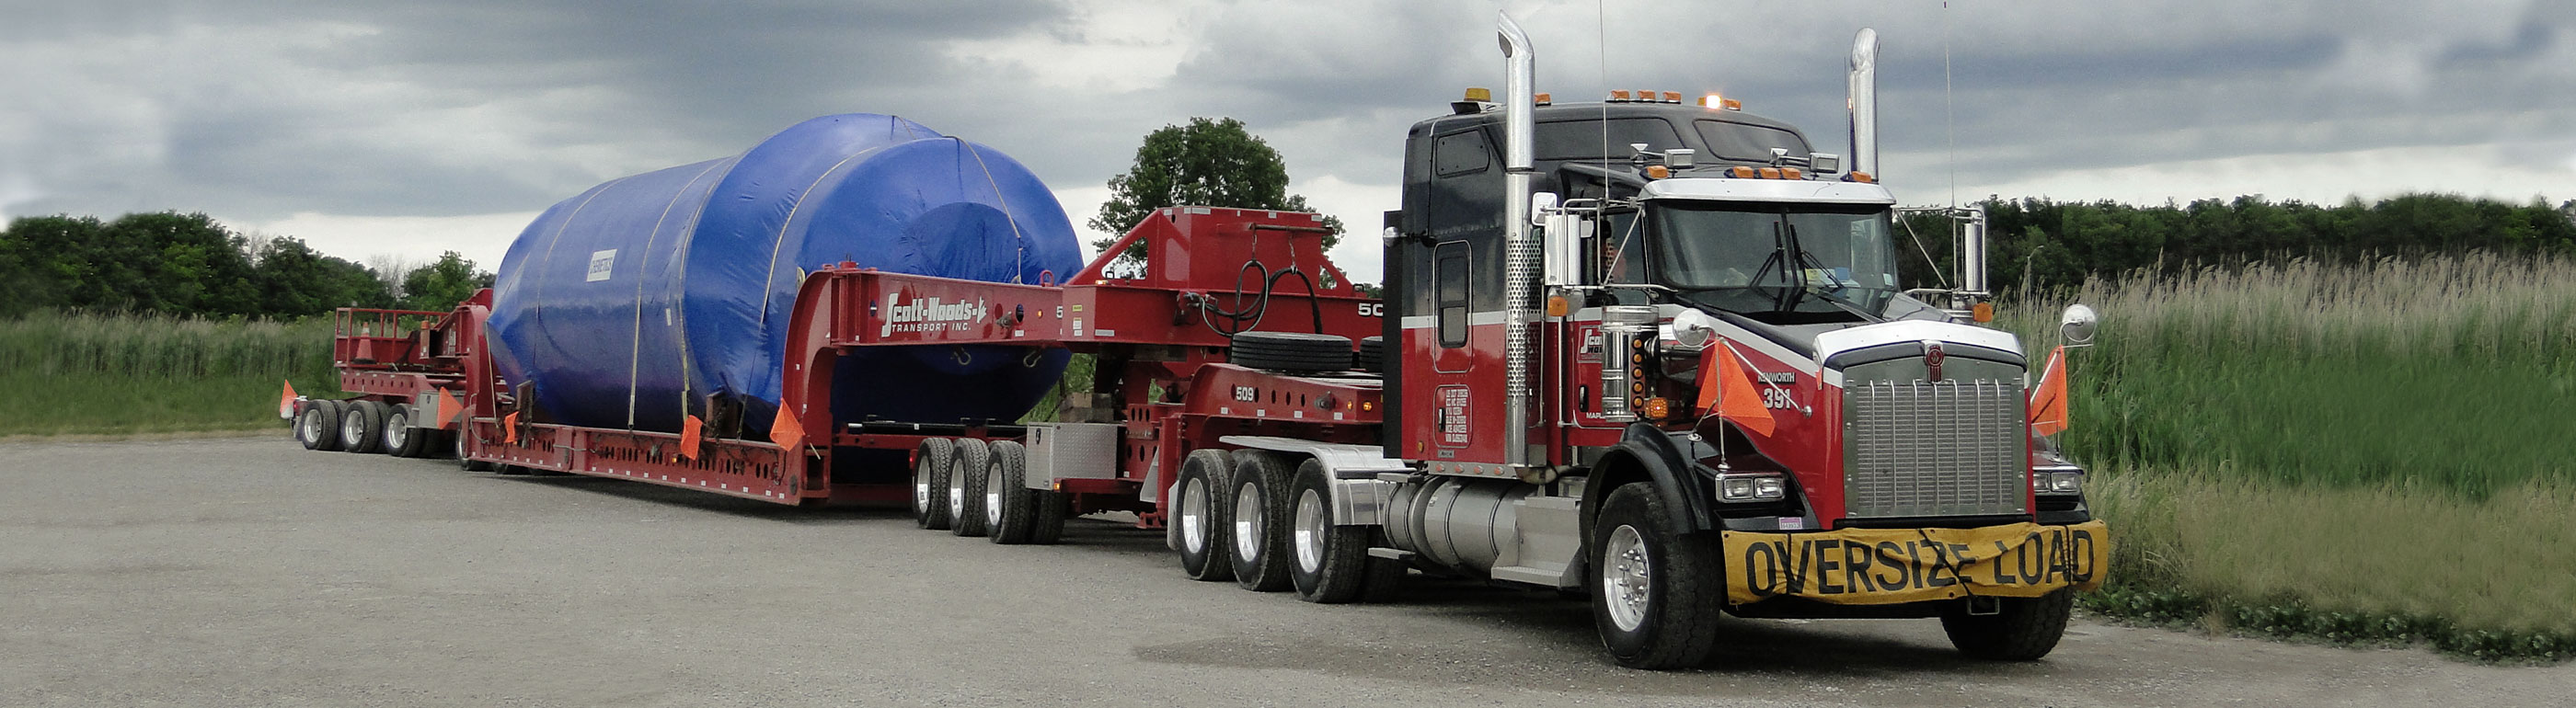 Heavy haul truck transporting oversized equipment